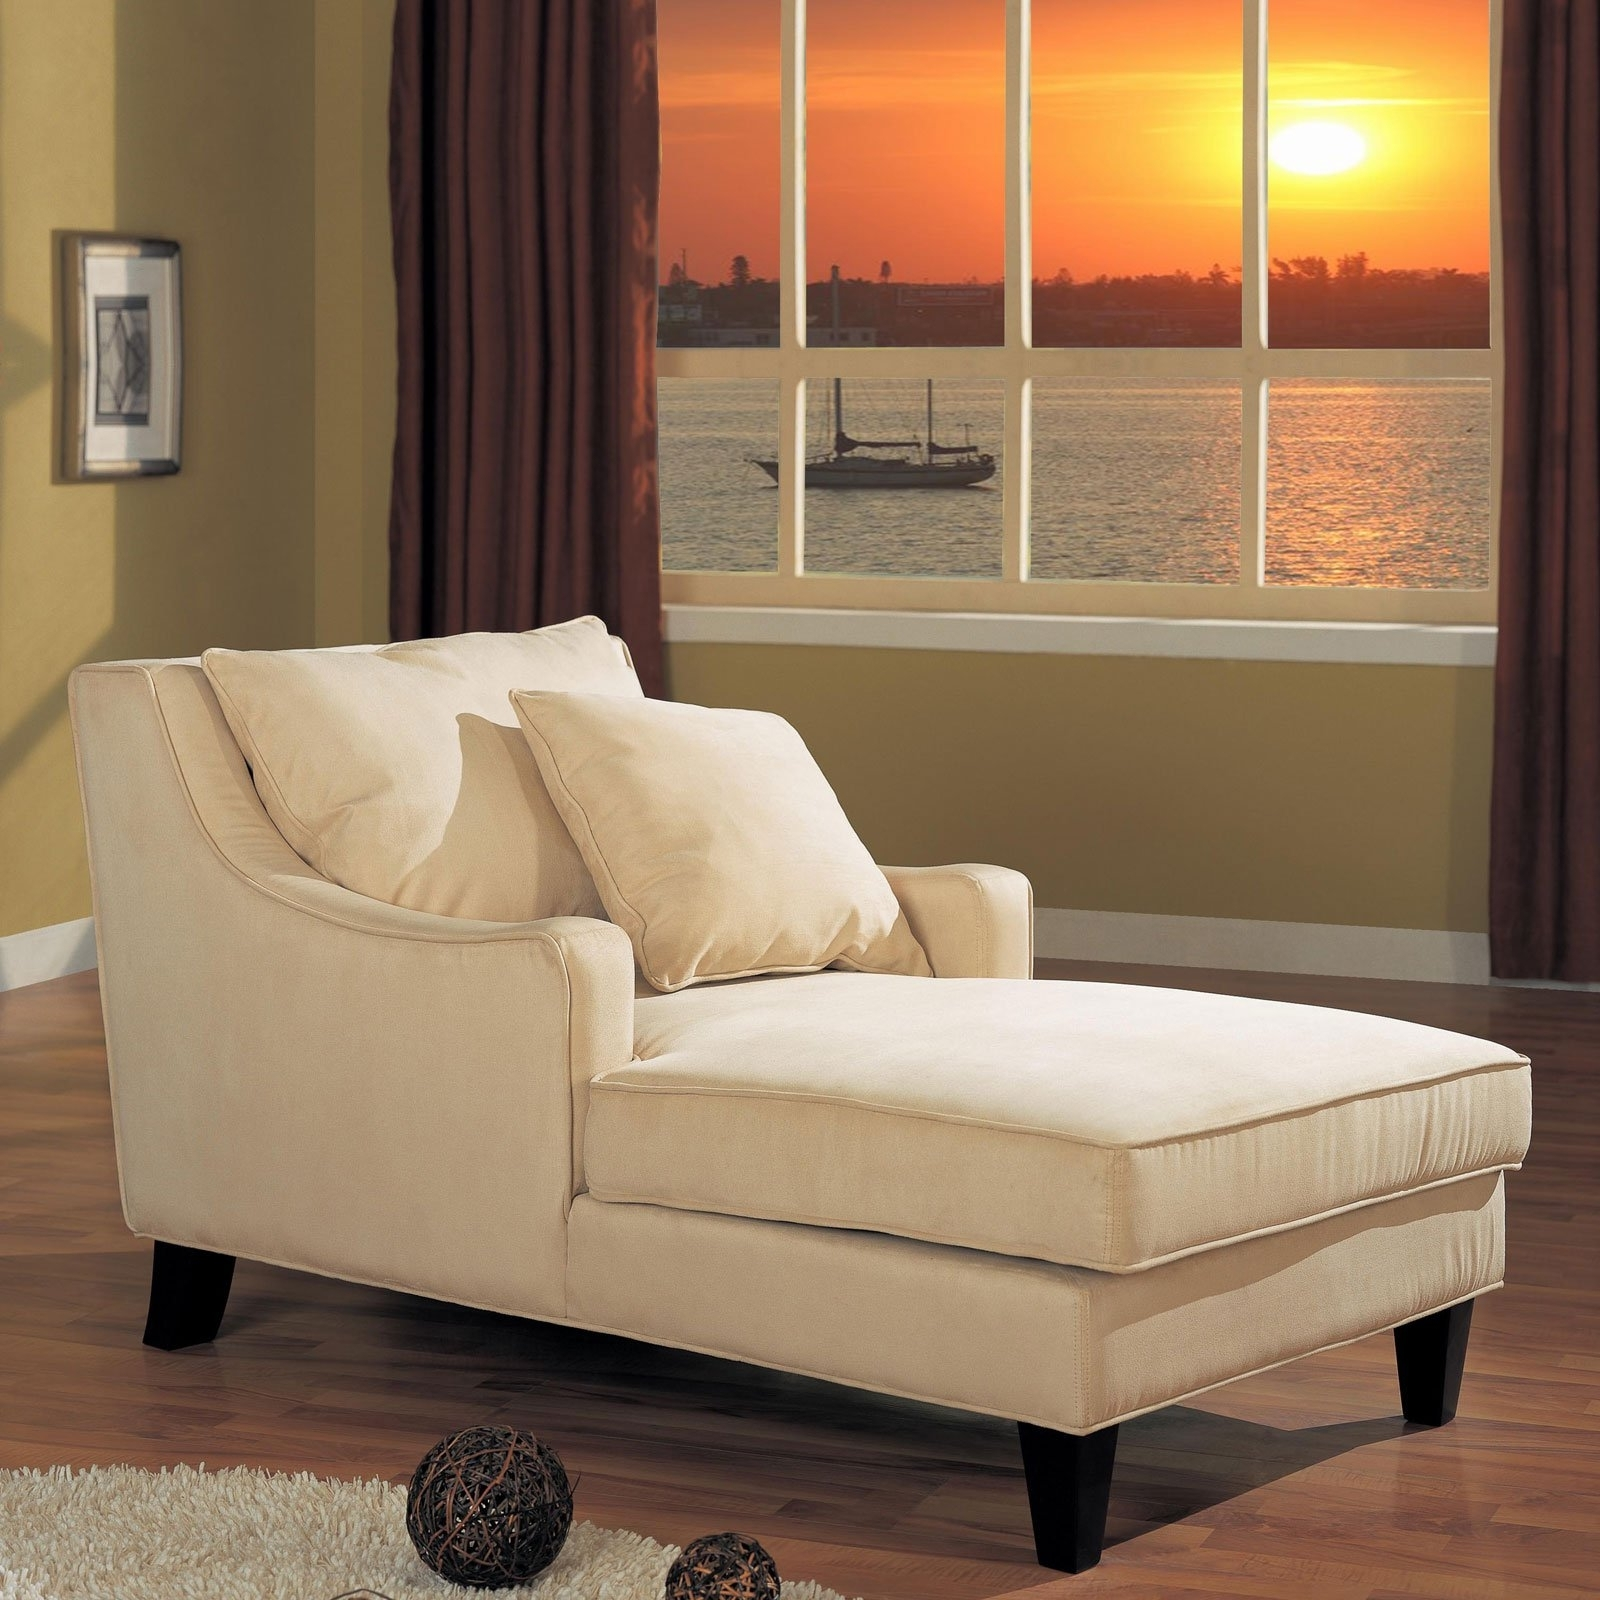 Most Up To Date Chaise Lounges For Bedrooms Within Etikaprojects (View 13 of 15)